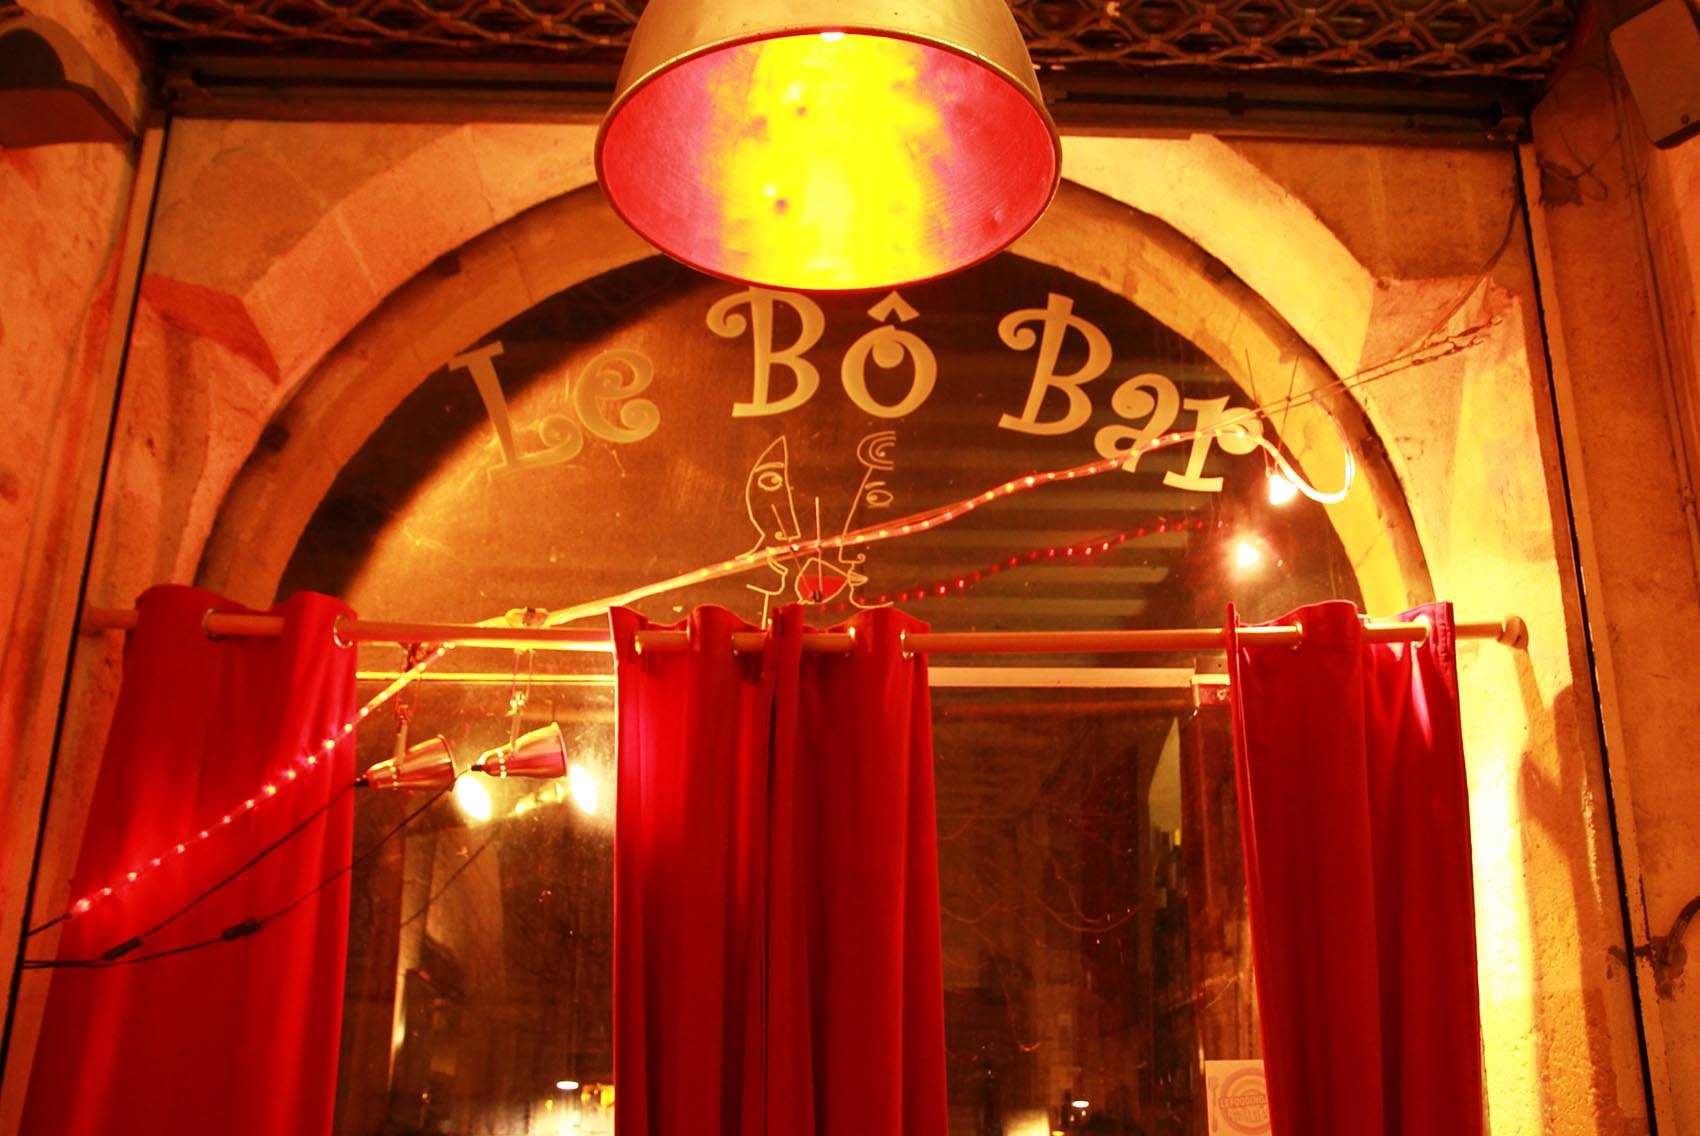 Le Bô Bar, Bordeaux